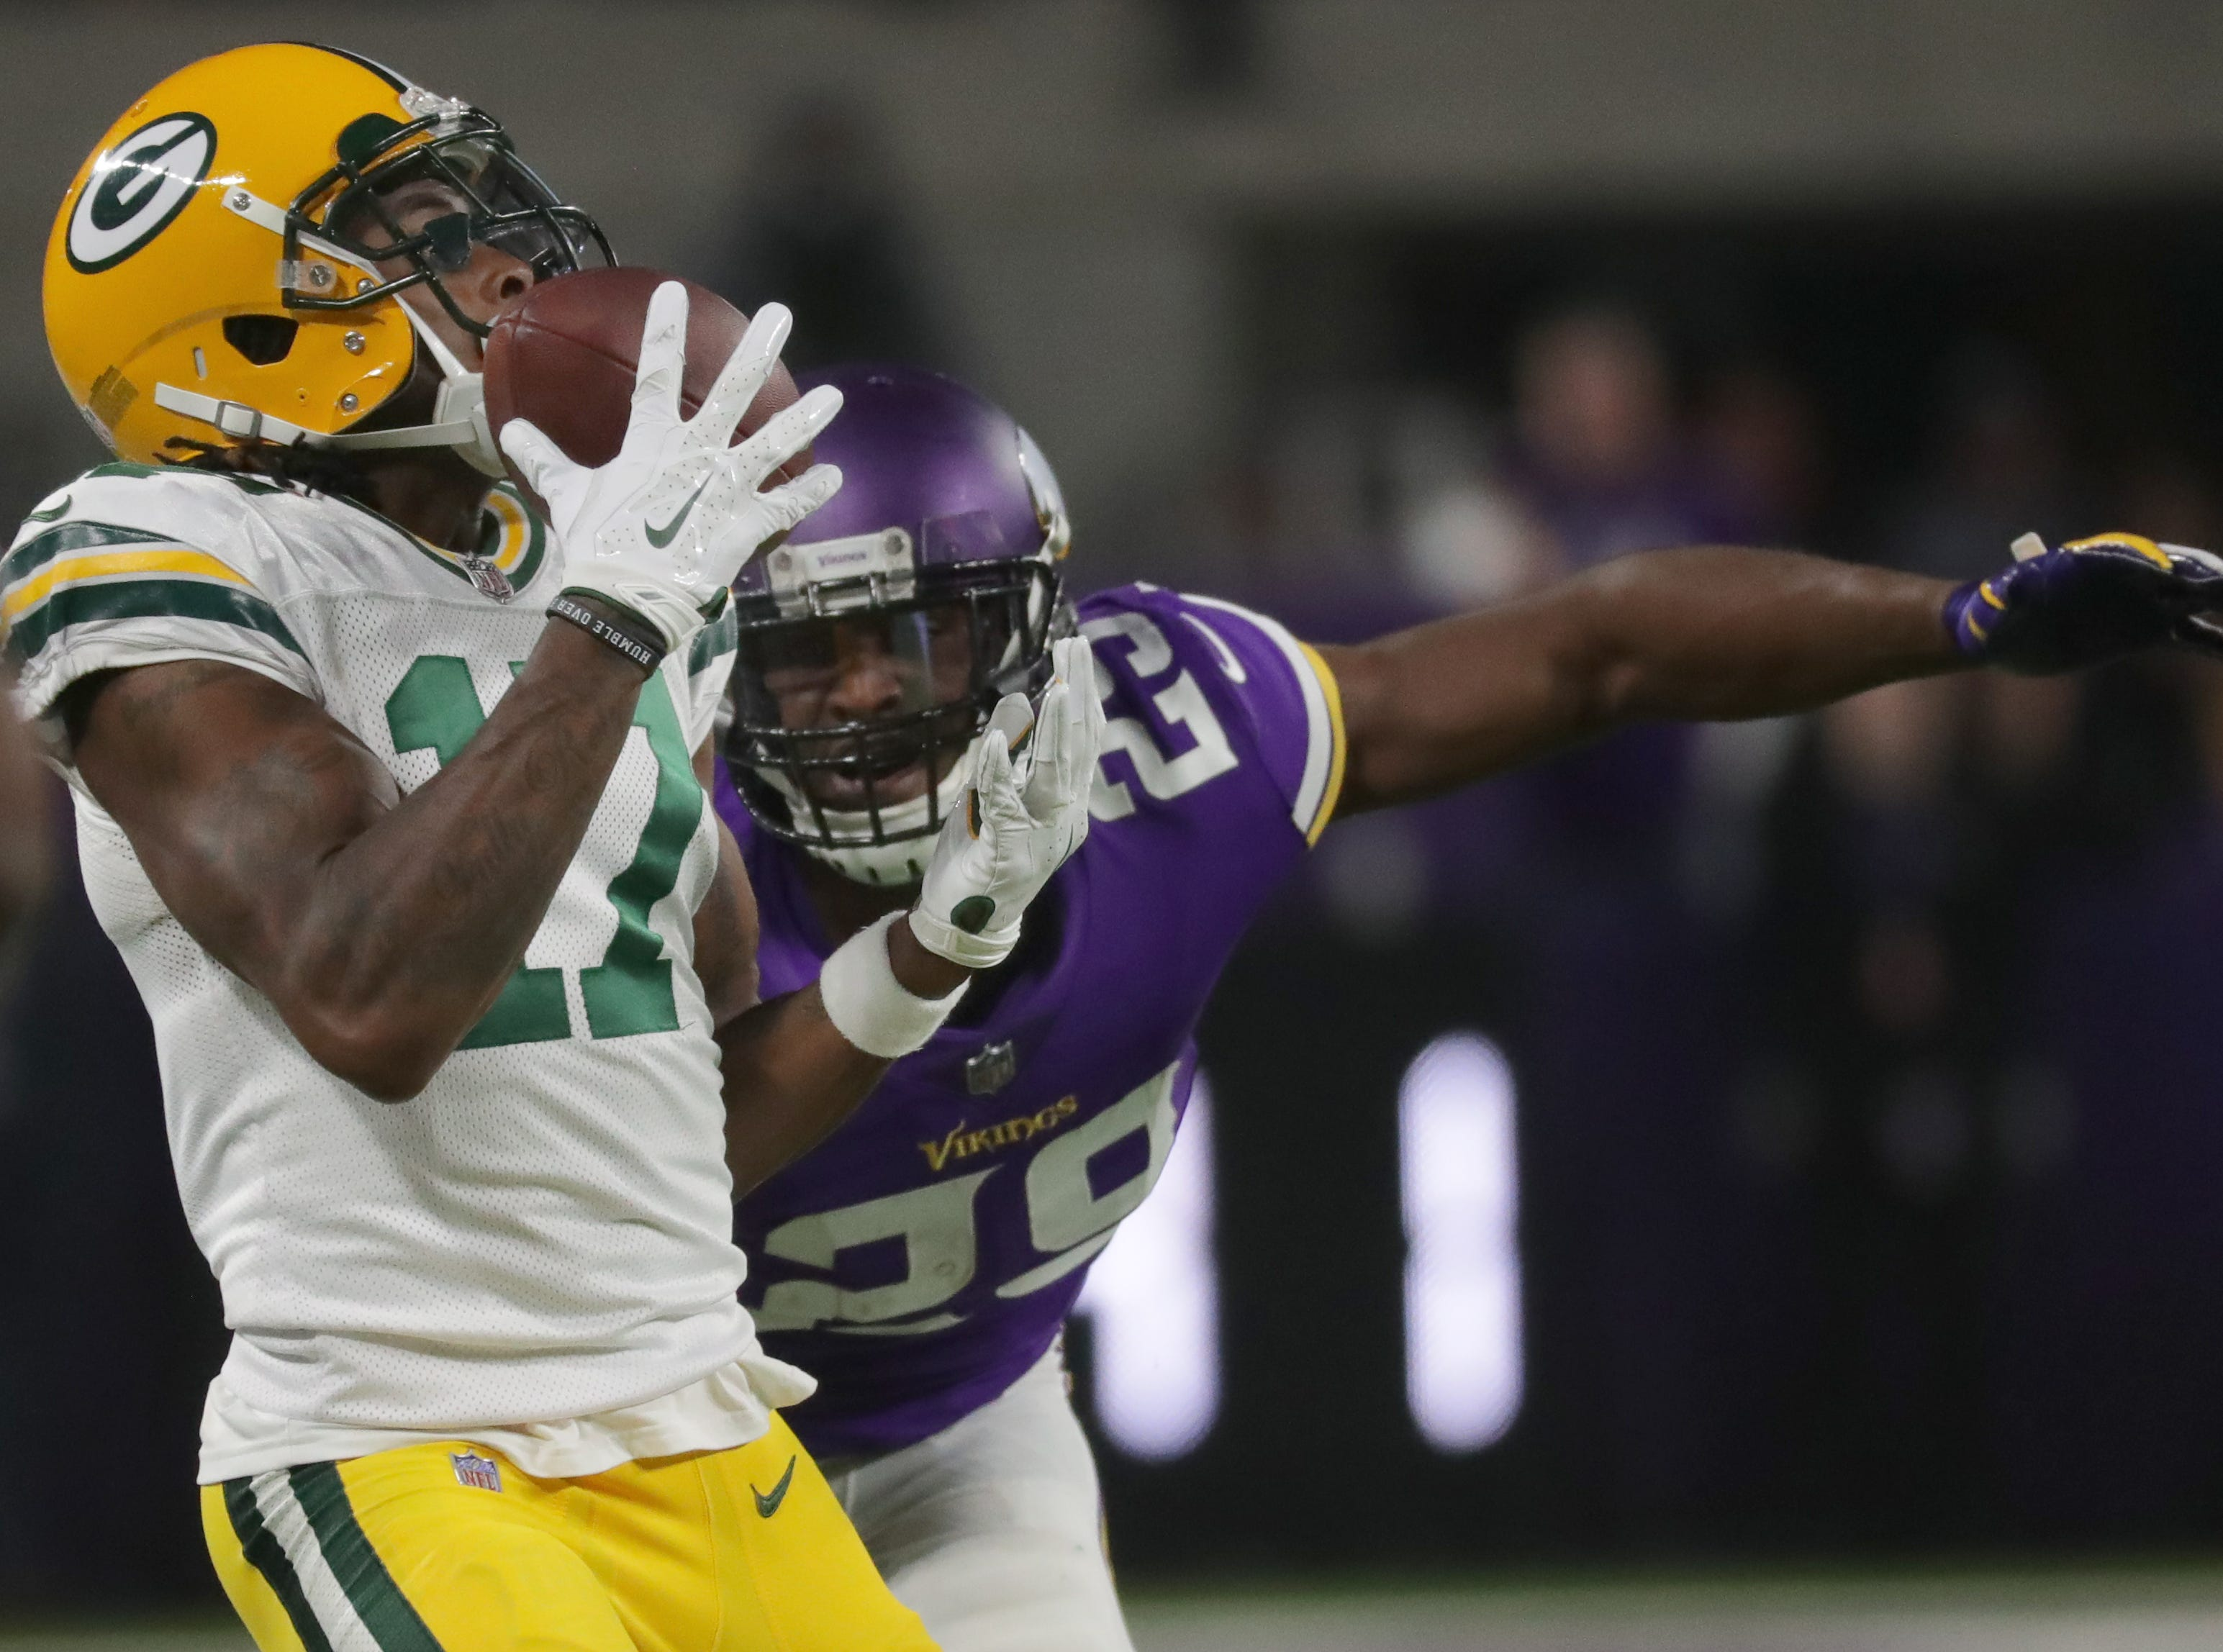 Green Bay Packers wide receiver Davante Adams (17) reels in long reception while being covered by Minnesota Vikings cornerback Xavier Rhodes (29) during the fourth  quarter of their game Sunday, November 25, 2018 at U.S. Bank Stadium in Minneapolis, Minn. The Minnesota Vikings beat the Green Bay Packers 24-17.